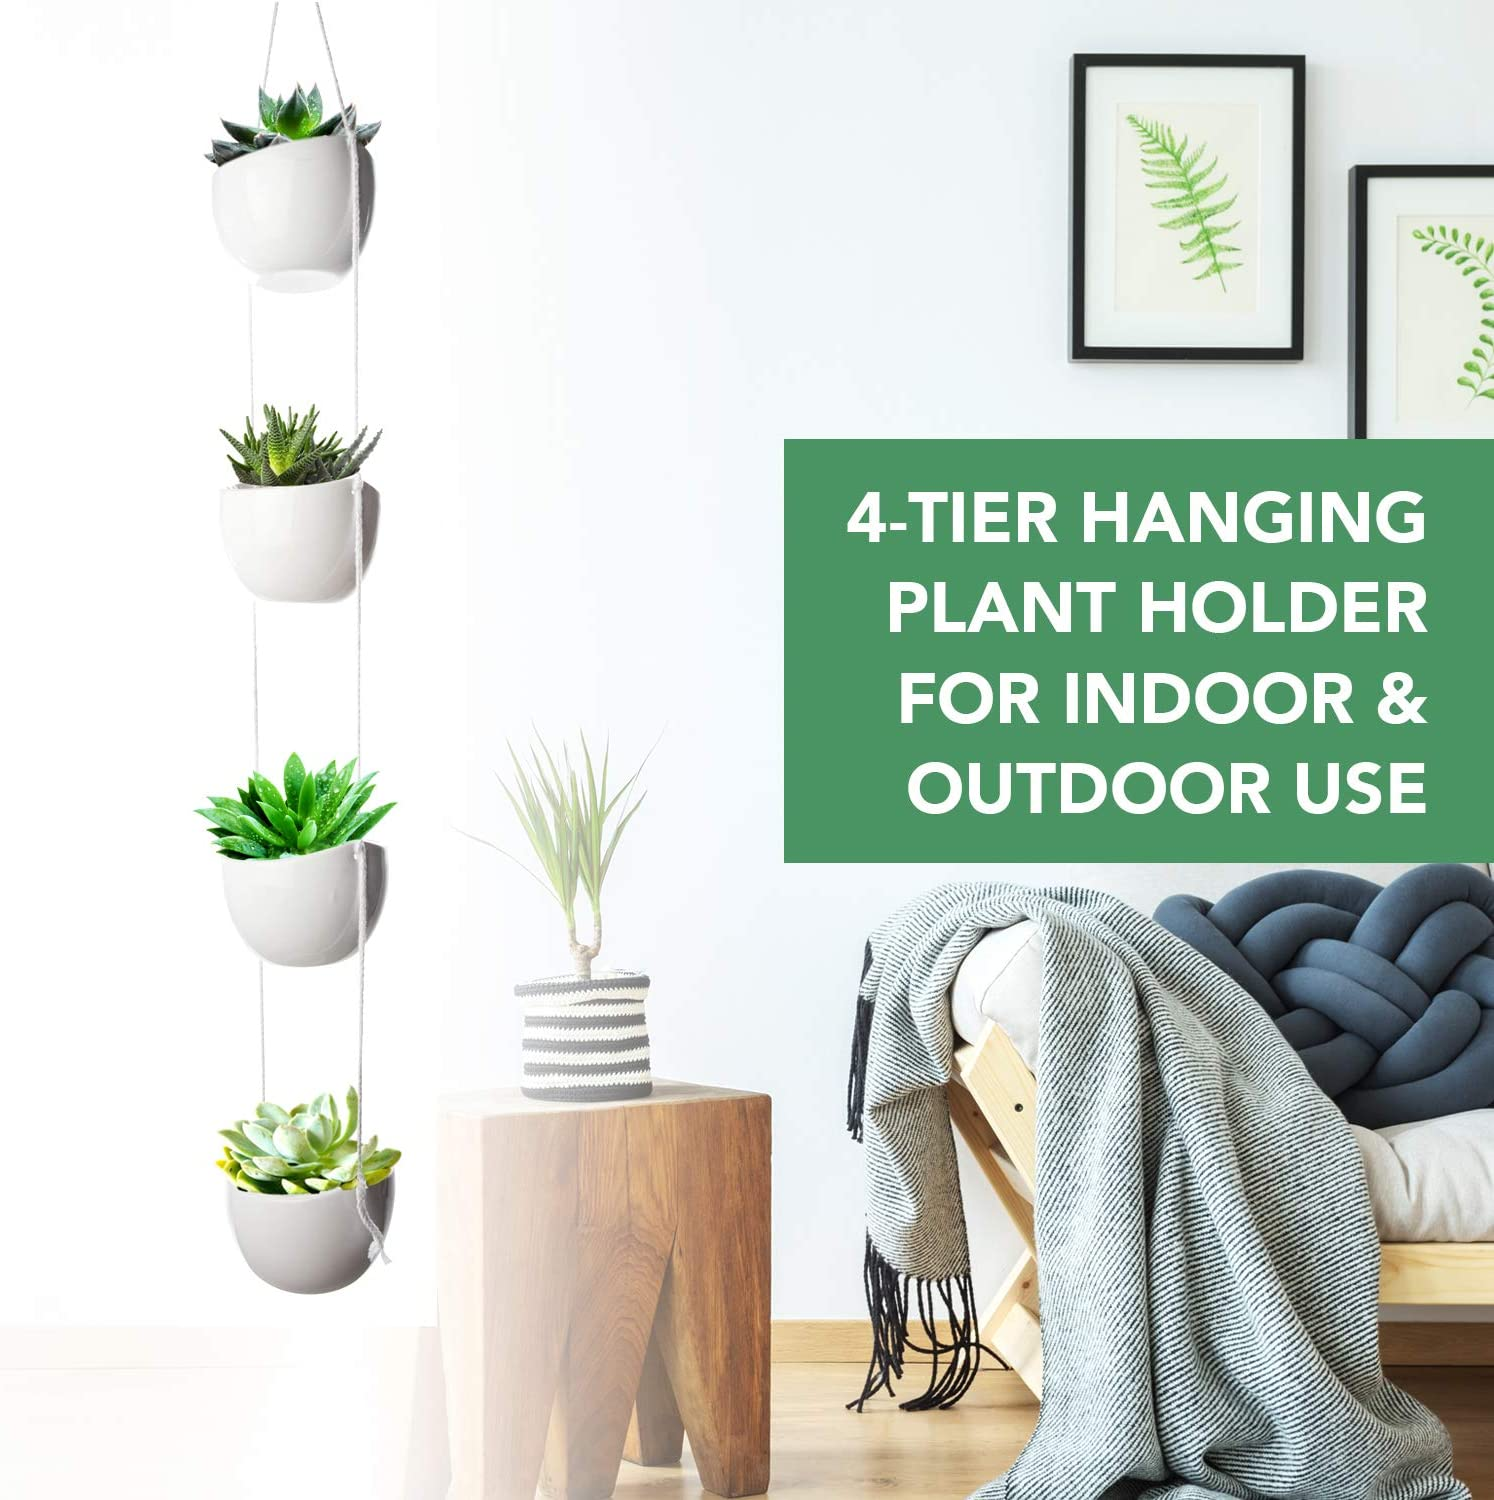 4-Tier Hanging Plant Holder, White Ceramic Planters for Wall Ceiling, Decorative Planter Pots Outdoor Indoor Use, Succulent Wall Planters, 40-inch Hanging Plant Pots, White Bowl Pots for Plants